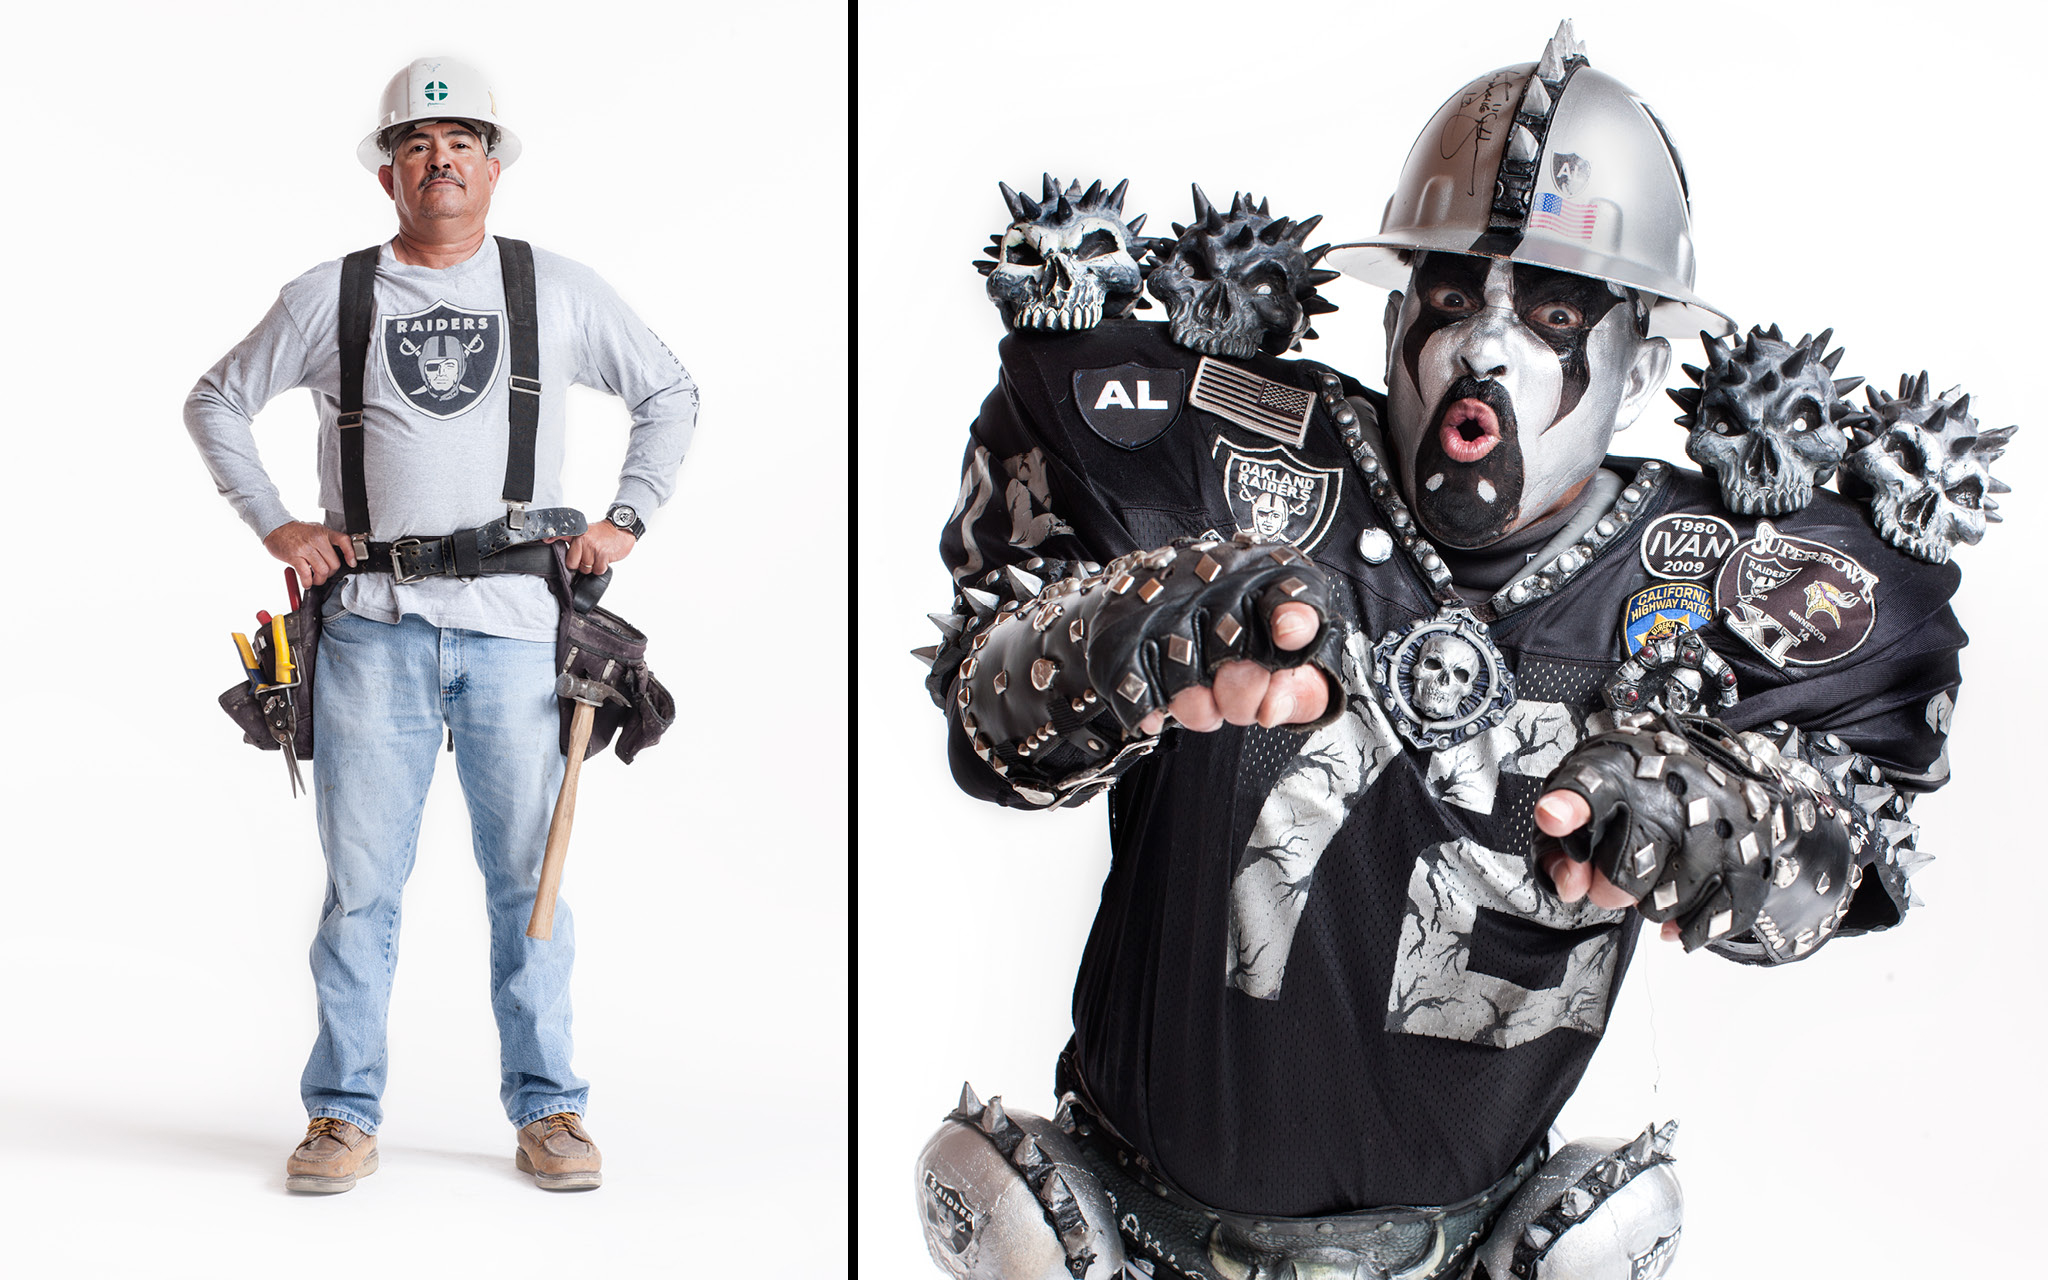 Welcome to Oakland RAIDER NATION BEHIND THE MAKEUP ESPN